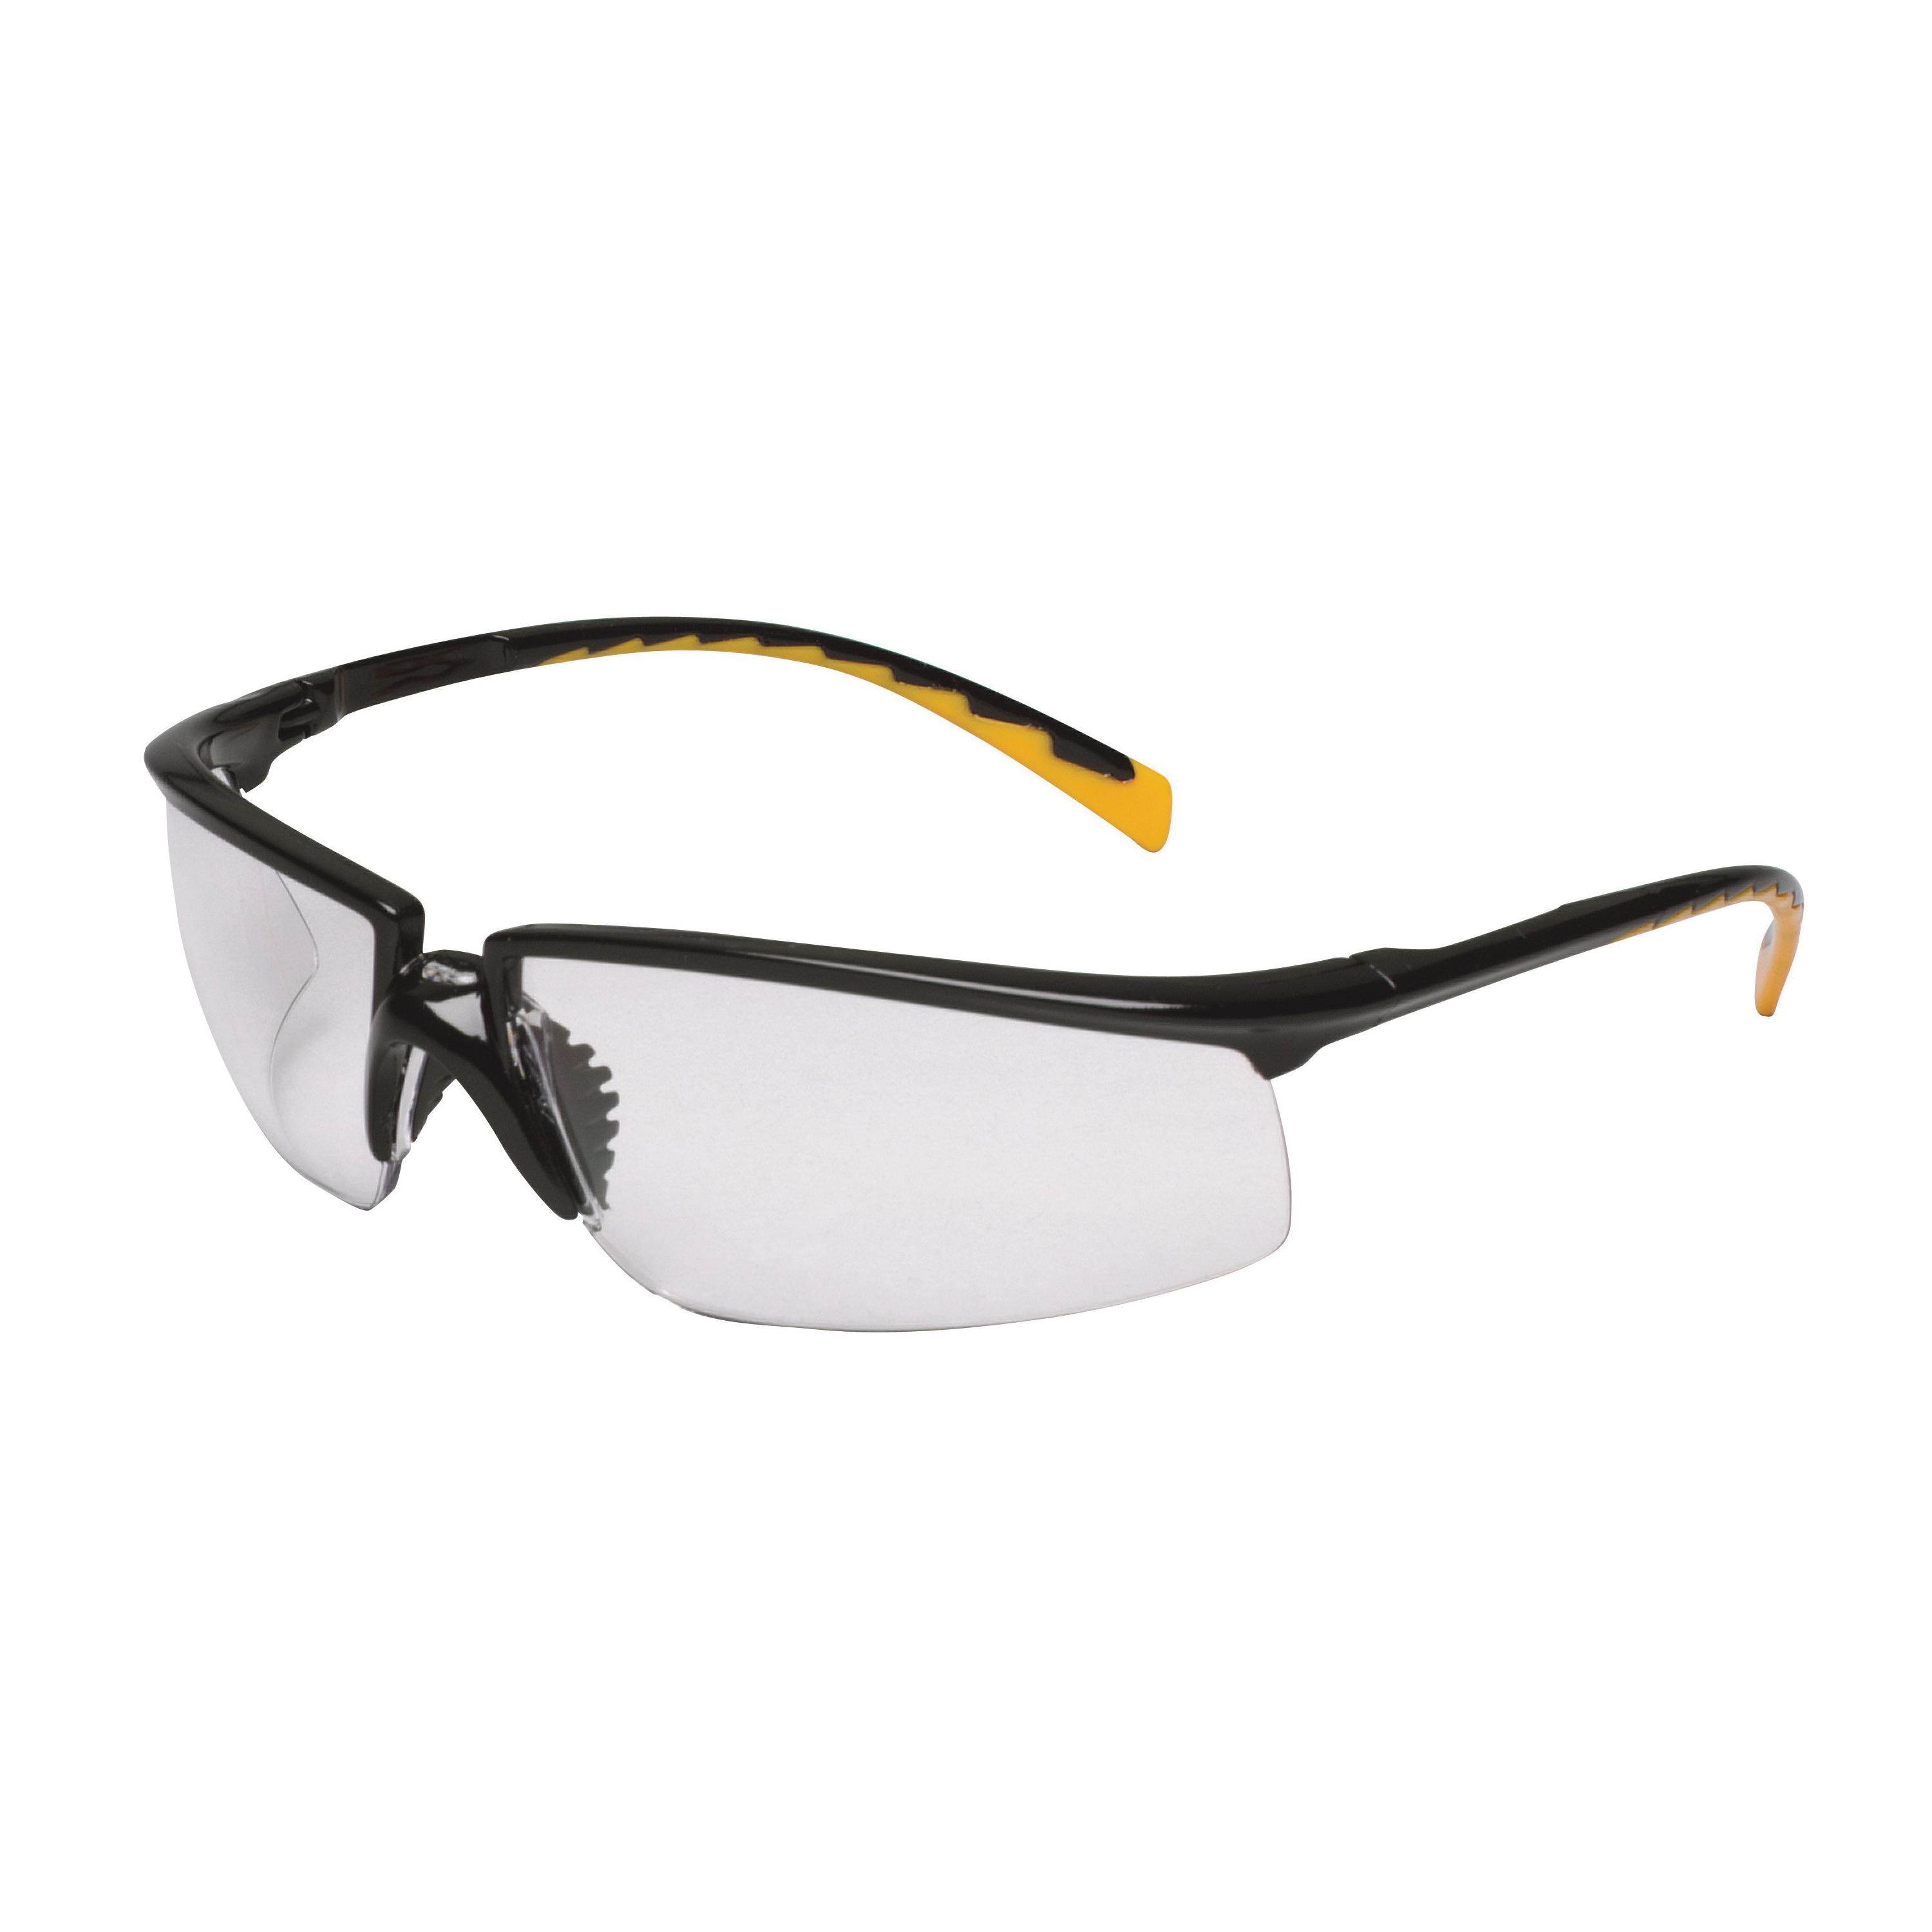 3M™ Privo™ 078371-62090 12264-00000-20 Value Range Protective Eyewear, Anti-Fog Indoor/Outdoor Mirror Lens, Half Framed Black Plastic Frame, Polycarbonate Lens, Specifications Met: ANSI Z87.1-2003, CSA Z94.3-2007